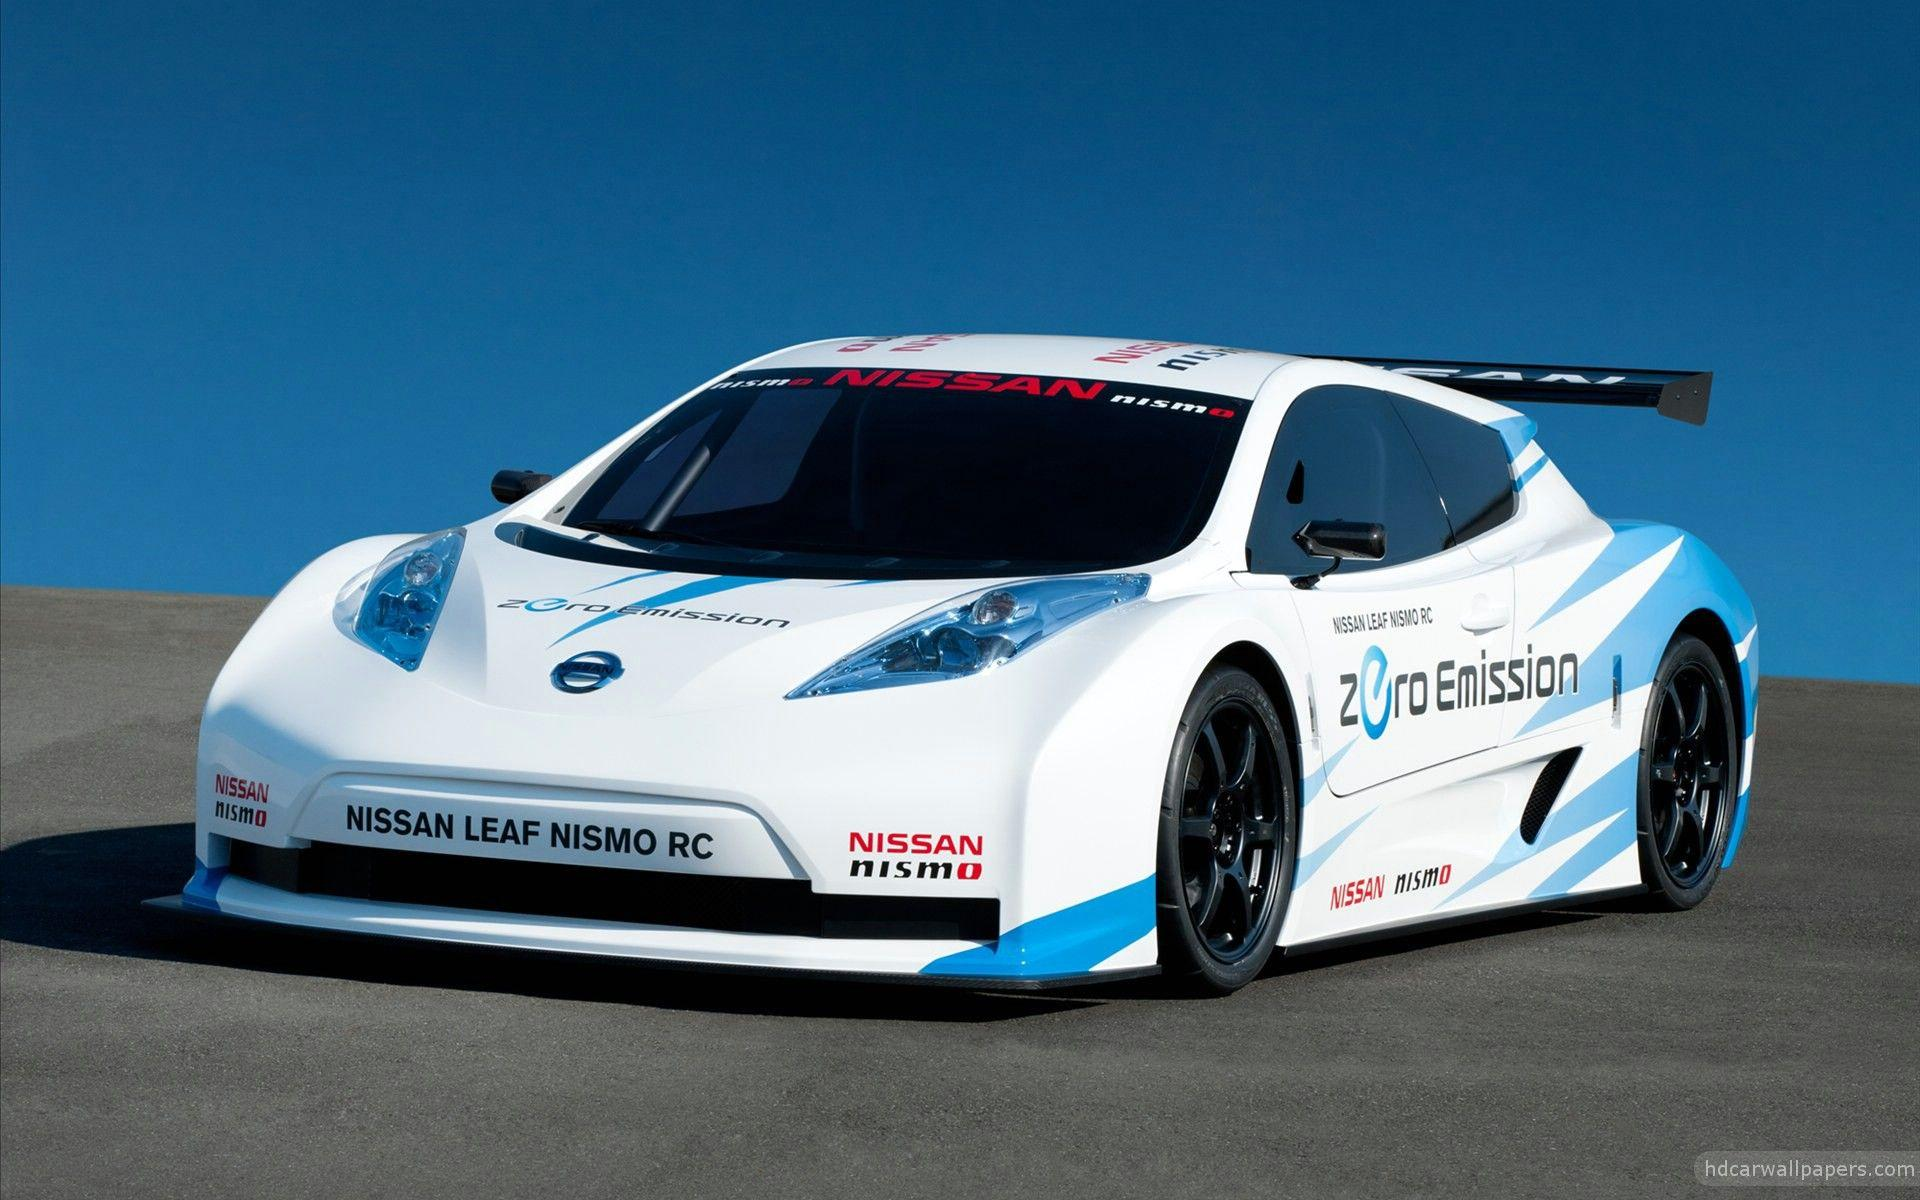 2011 Nissan Leaf Nismo RC Wallpaper | HD Car Wallpapers